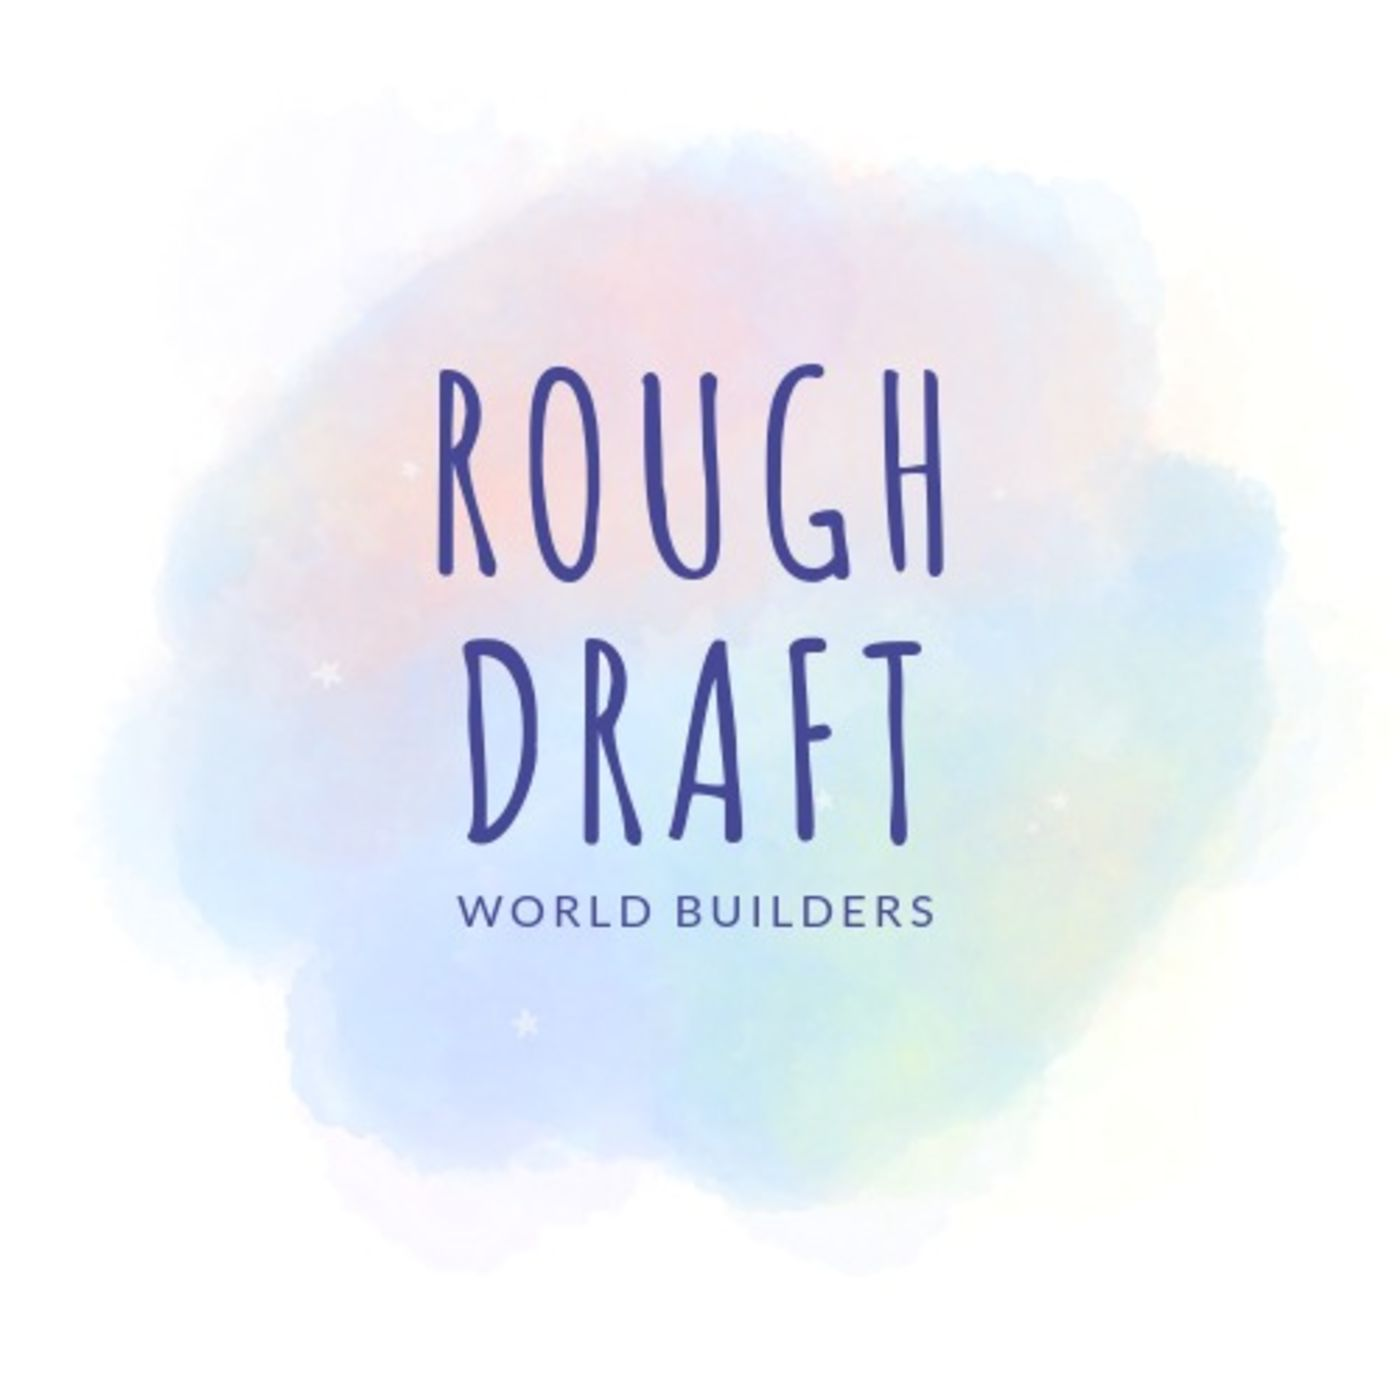 Rough Draft: World Builders